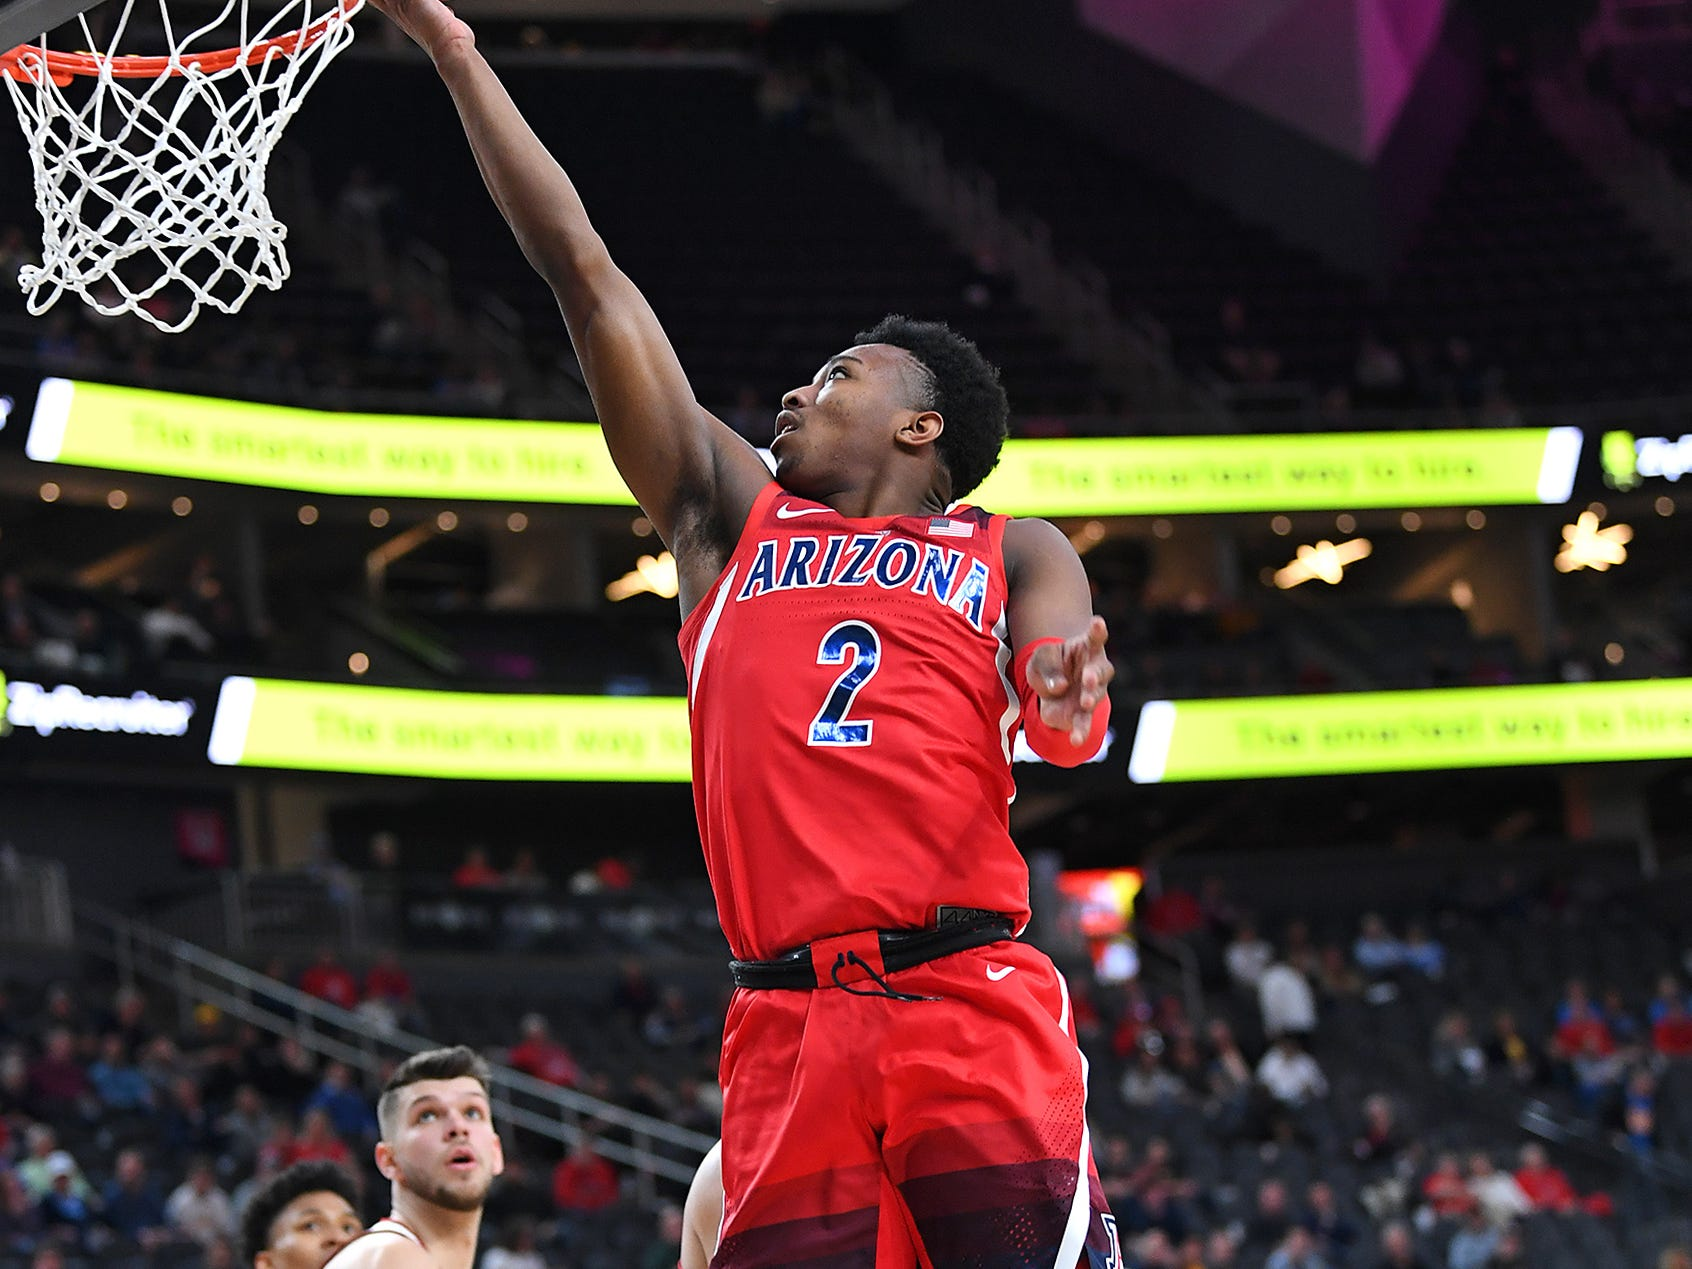 Mar 13, 2019; Las Vegas, NV, United States; Arizona Wildcats guard Brandon Williams (2) shoots during the first half against the USC Trojans in a Pac-12 conference tournament game at T-Mobile Arena. Mandatory Credit: Stephen R. Sylvanie-USA TODAY Sports